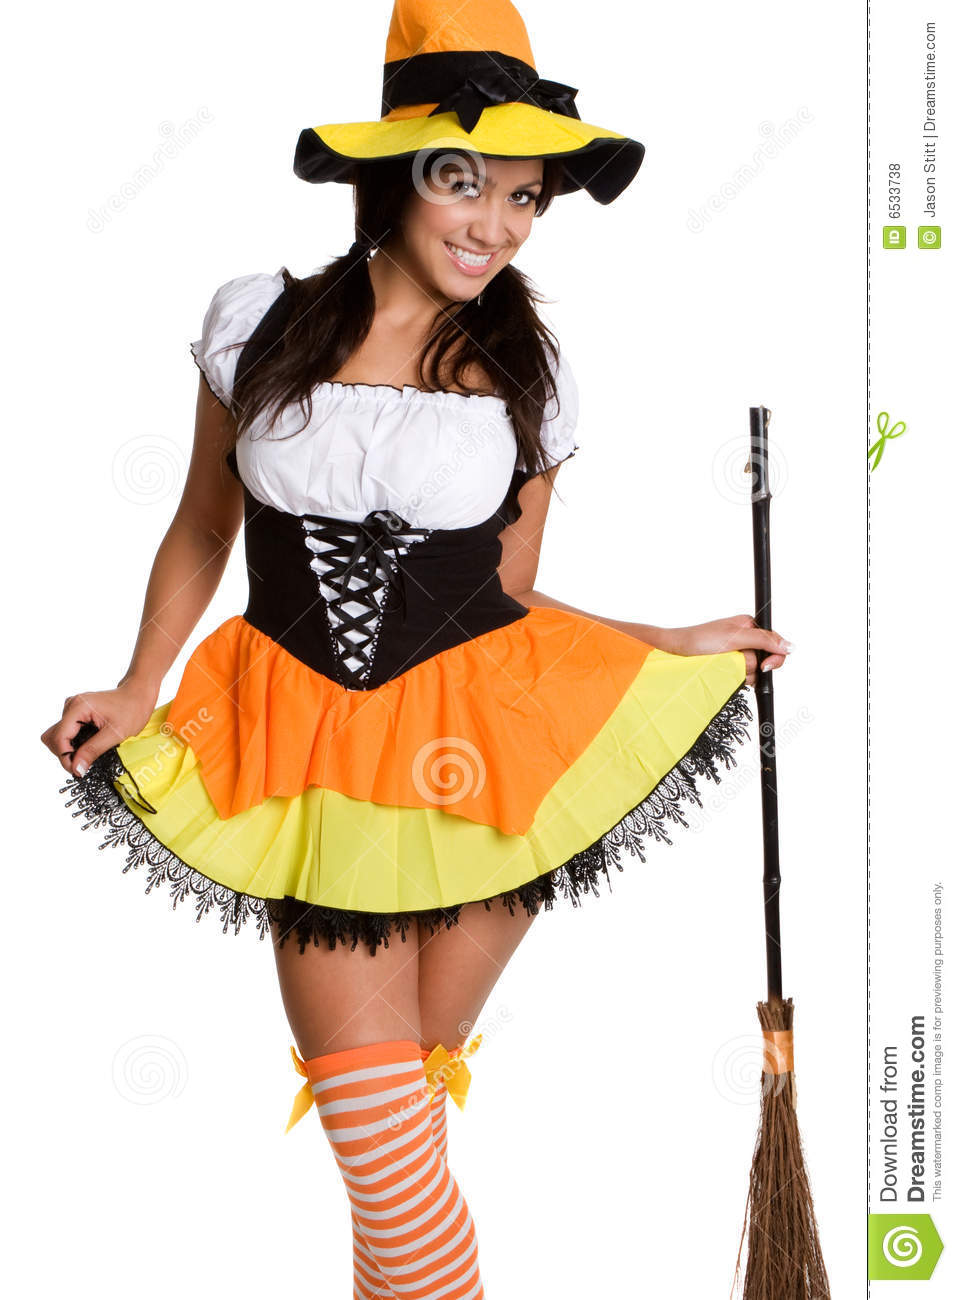 Witch Costume Royalty Free Stock Photos - Image: 6533738